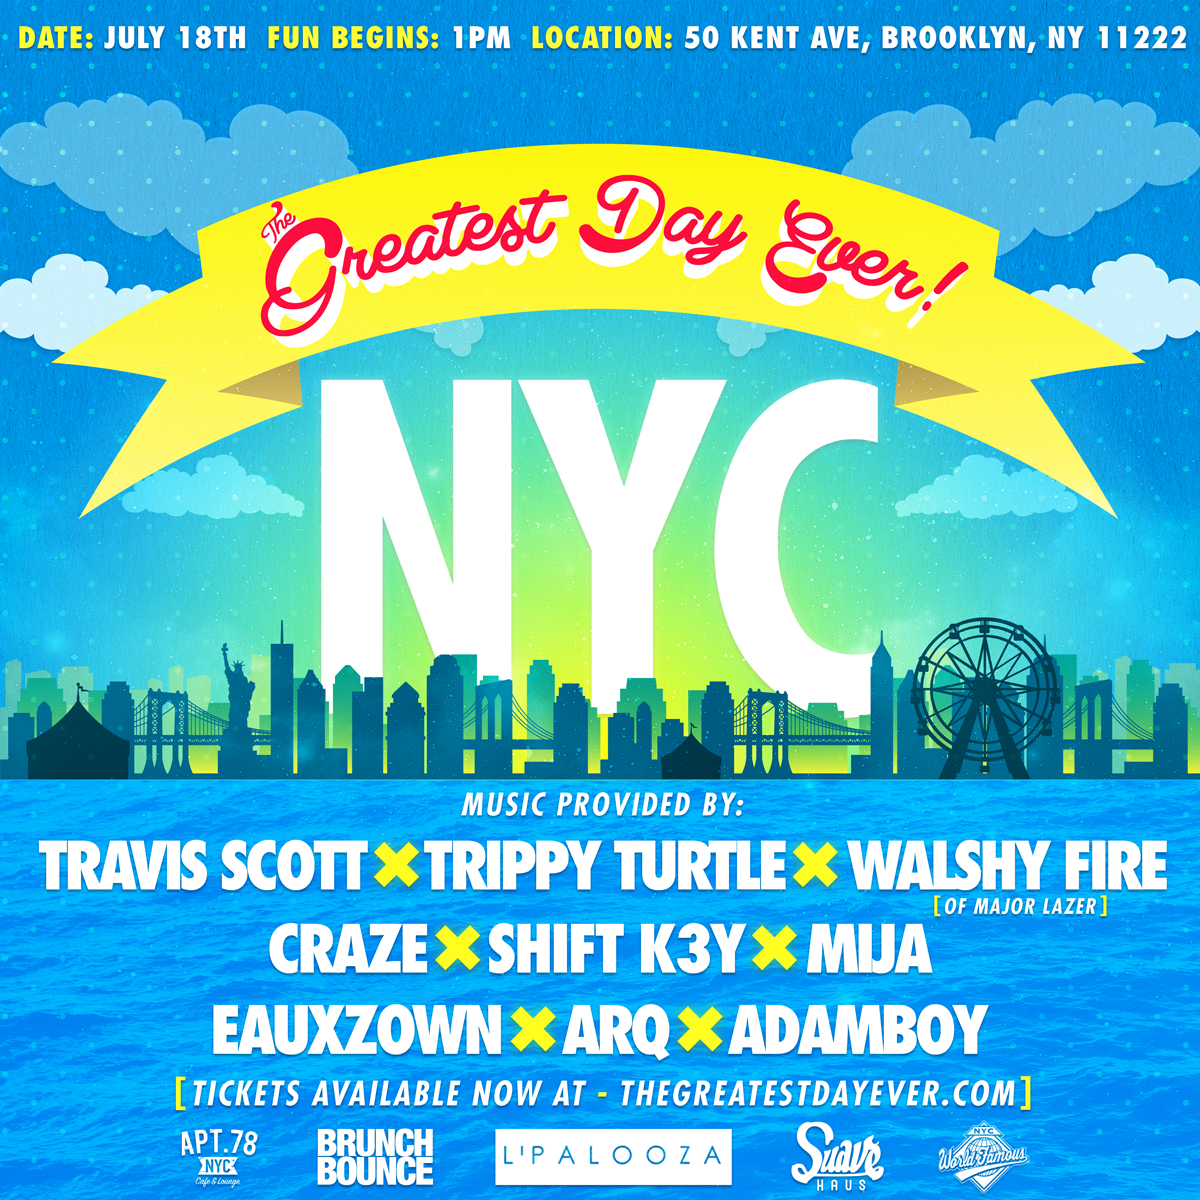 GDE2015-NYC-FLYER-FINAL-w-LOGOs-(1x1-ratio)(3000x3000)-5.png